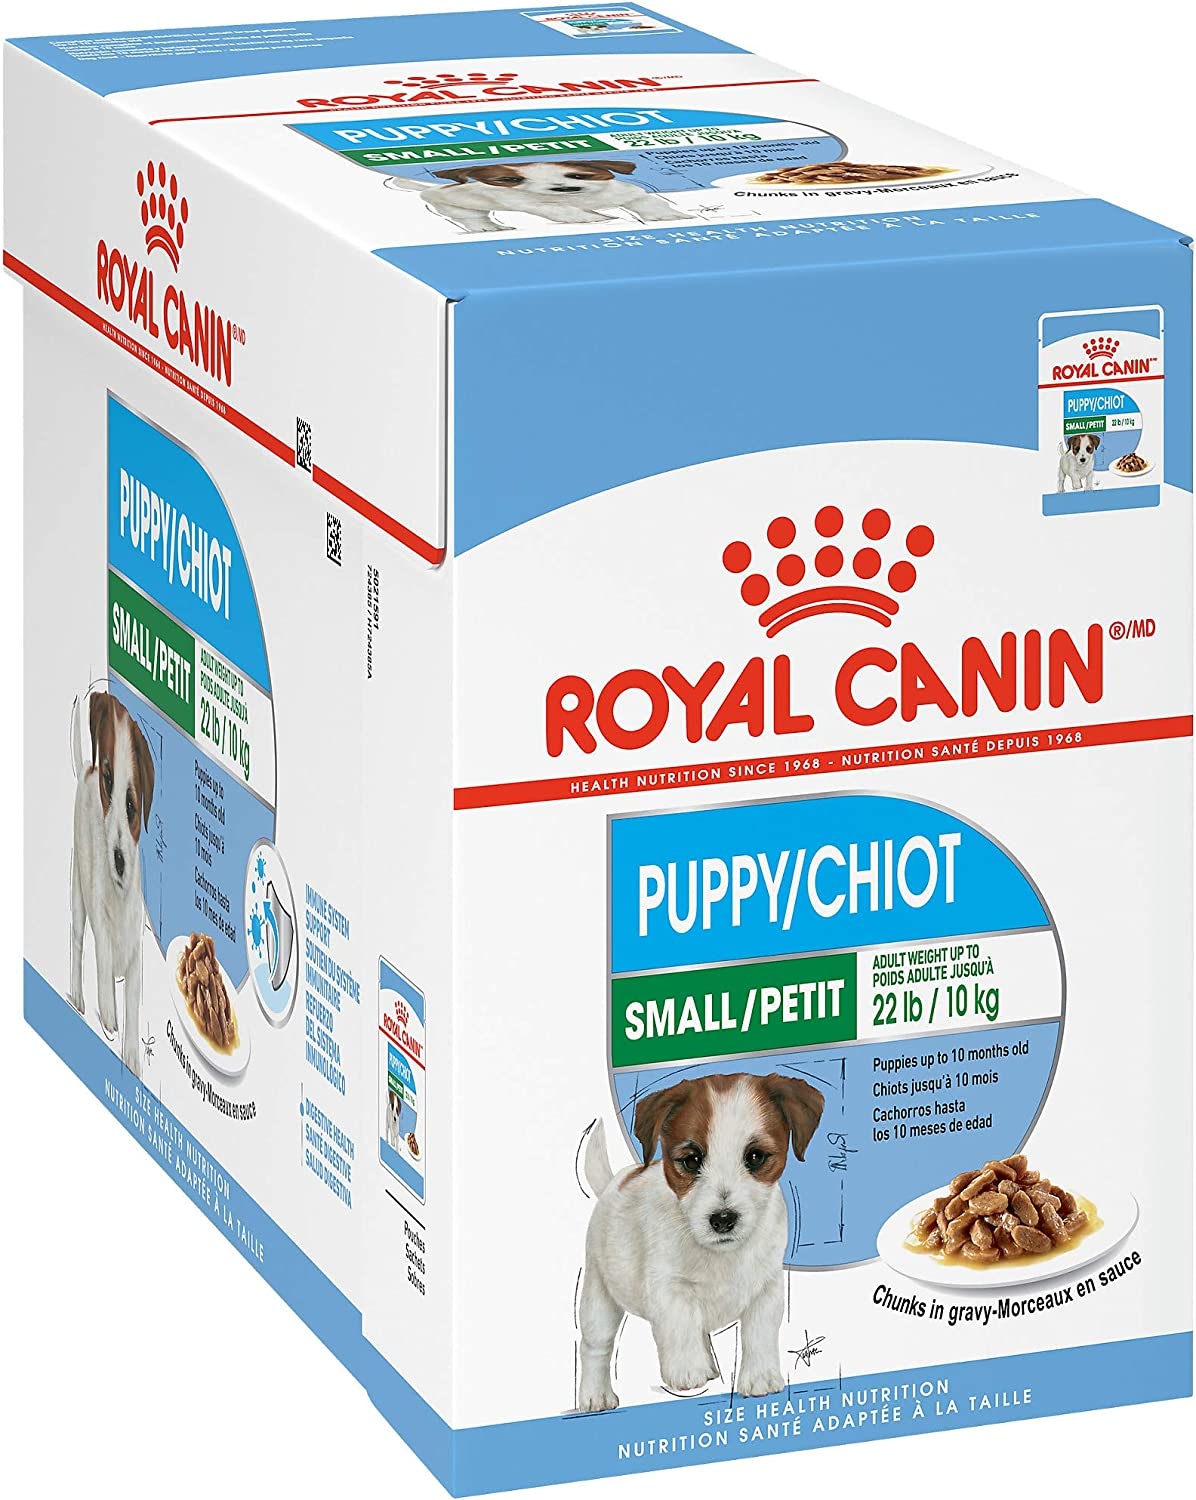 Royal Canin Small Breed Puppy Wet Dog Food, 3 ounce Pouch (Pack of 12)